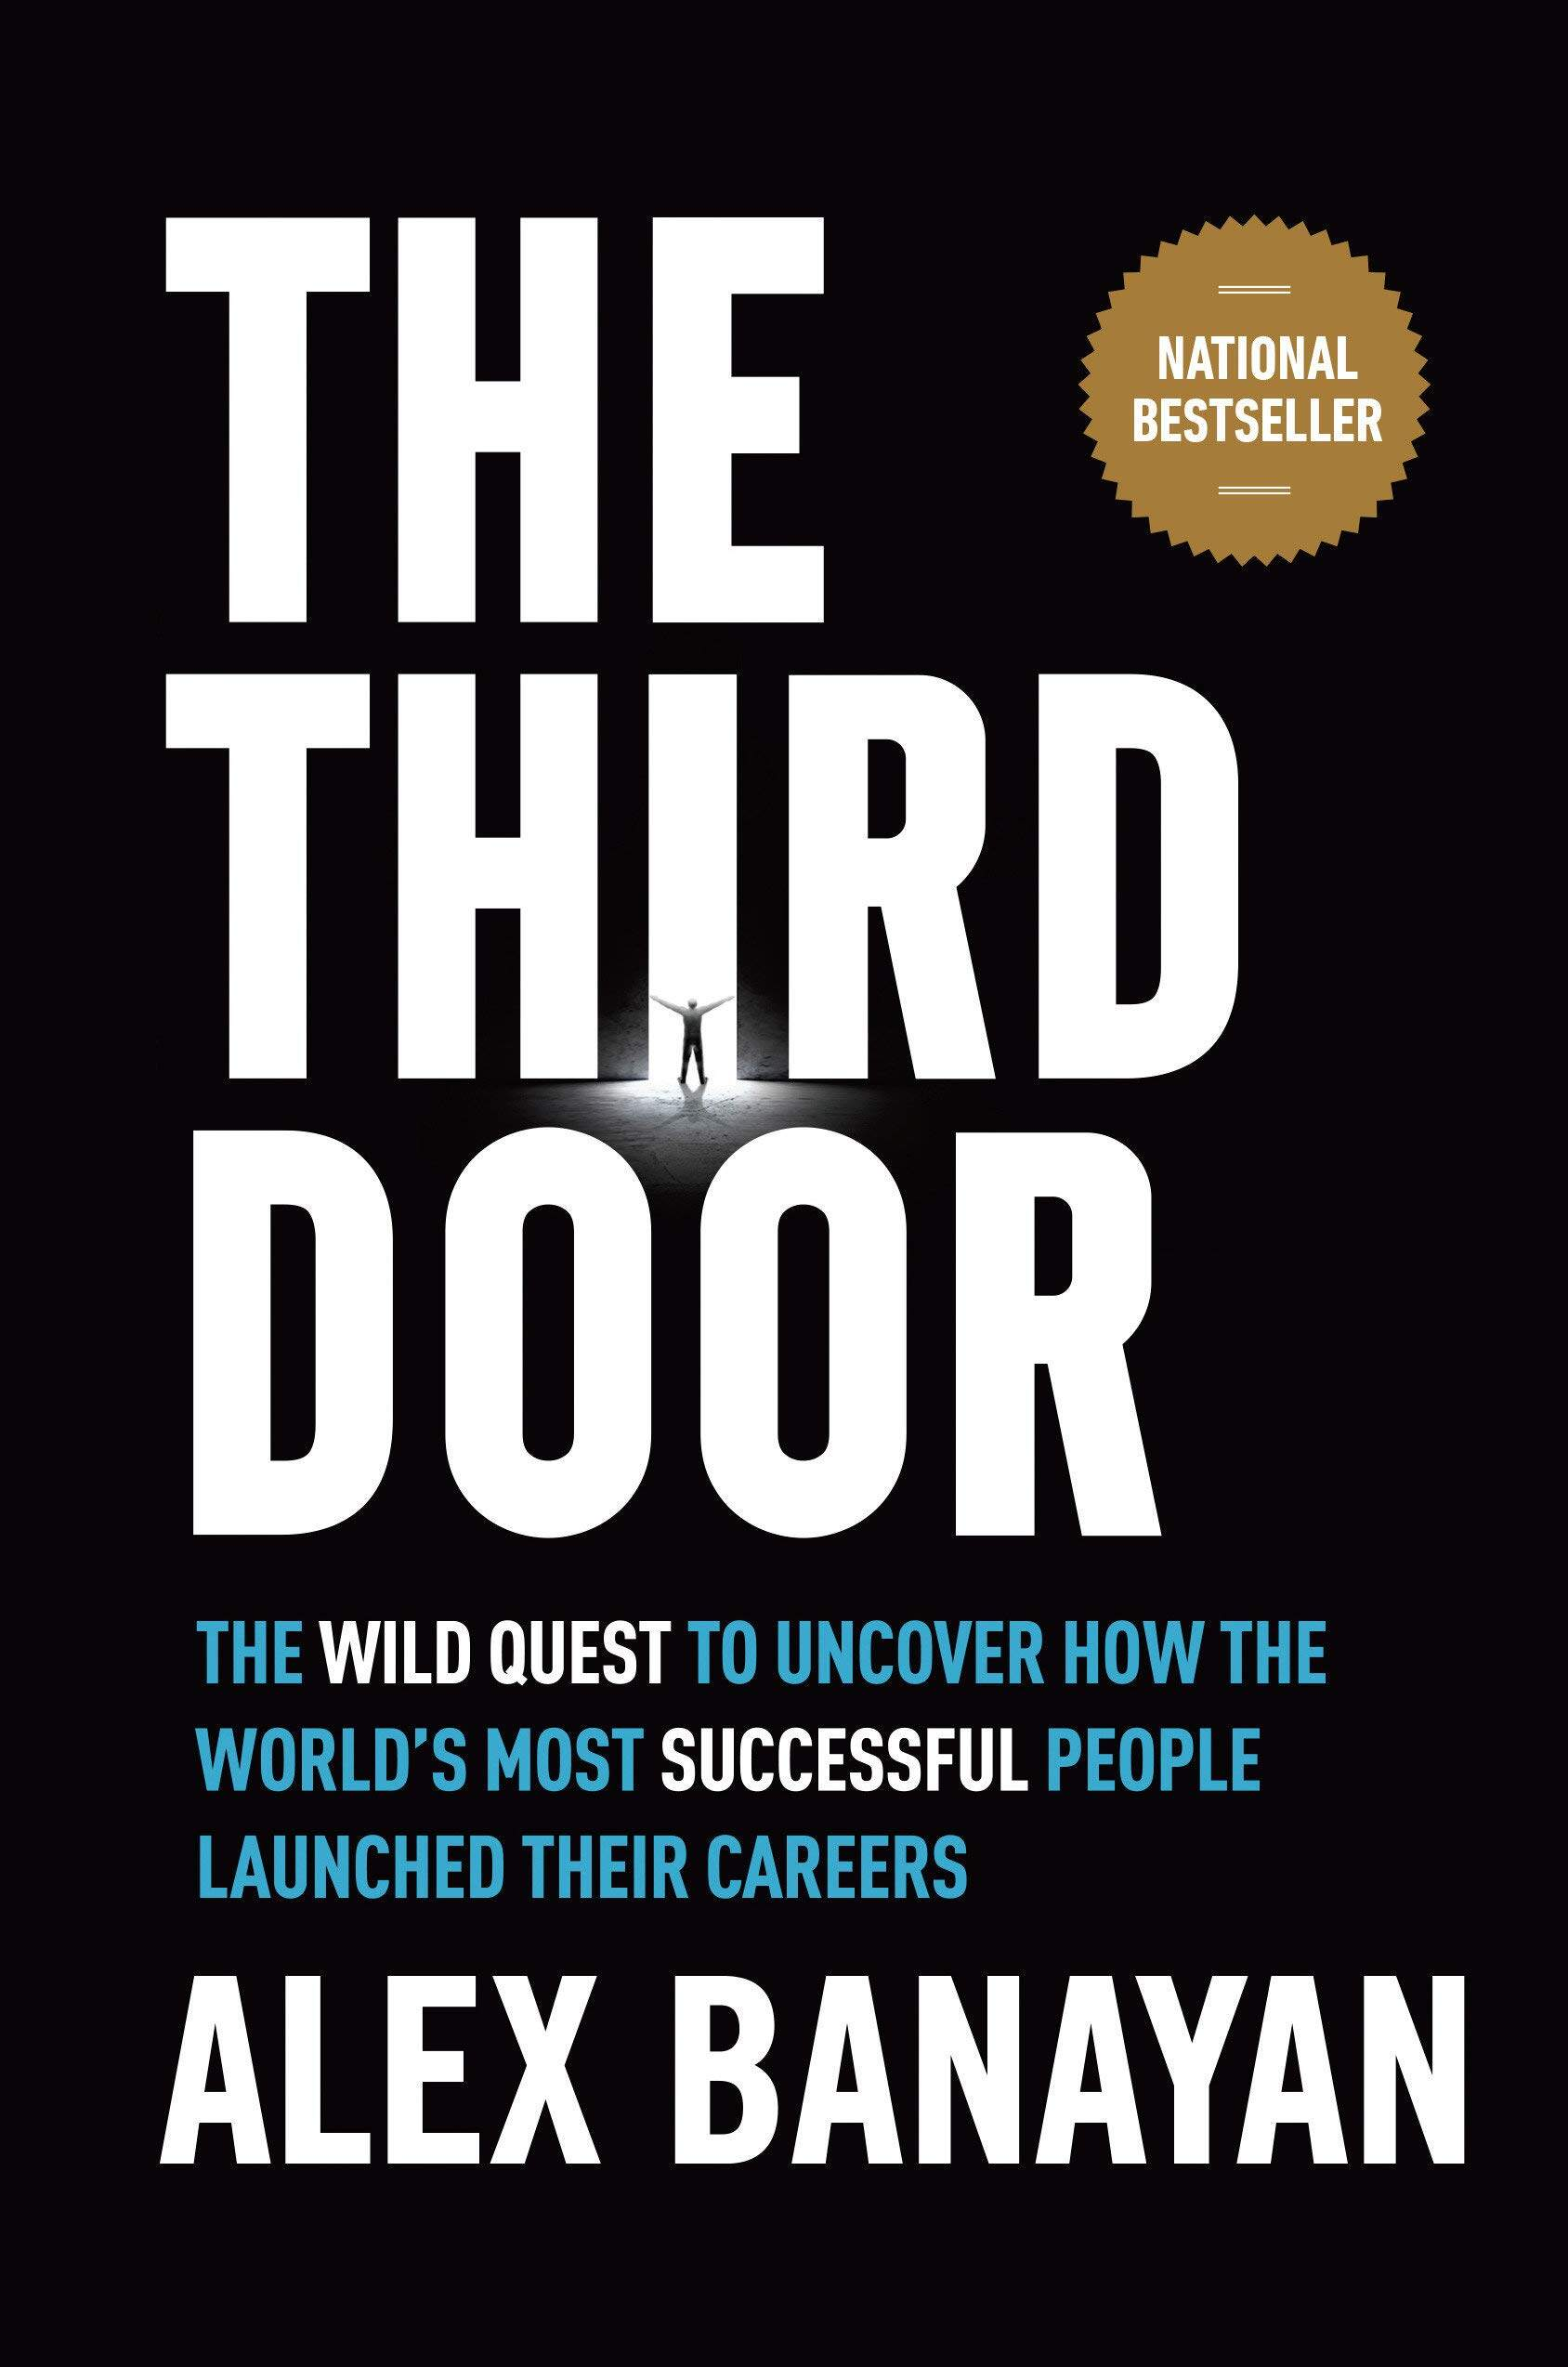 [eBook] The Third Door: The Wild Quest to Uncover How the World's Most Successful People Launched Their Careers - Alex Banayan